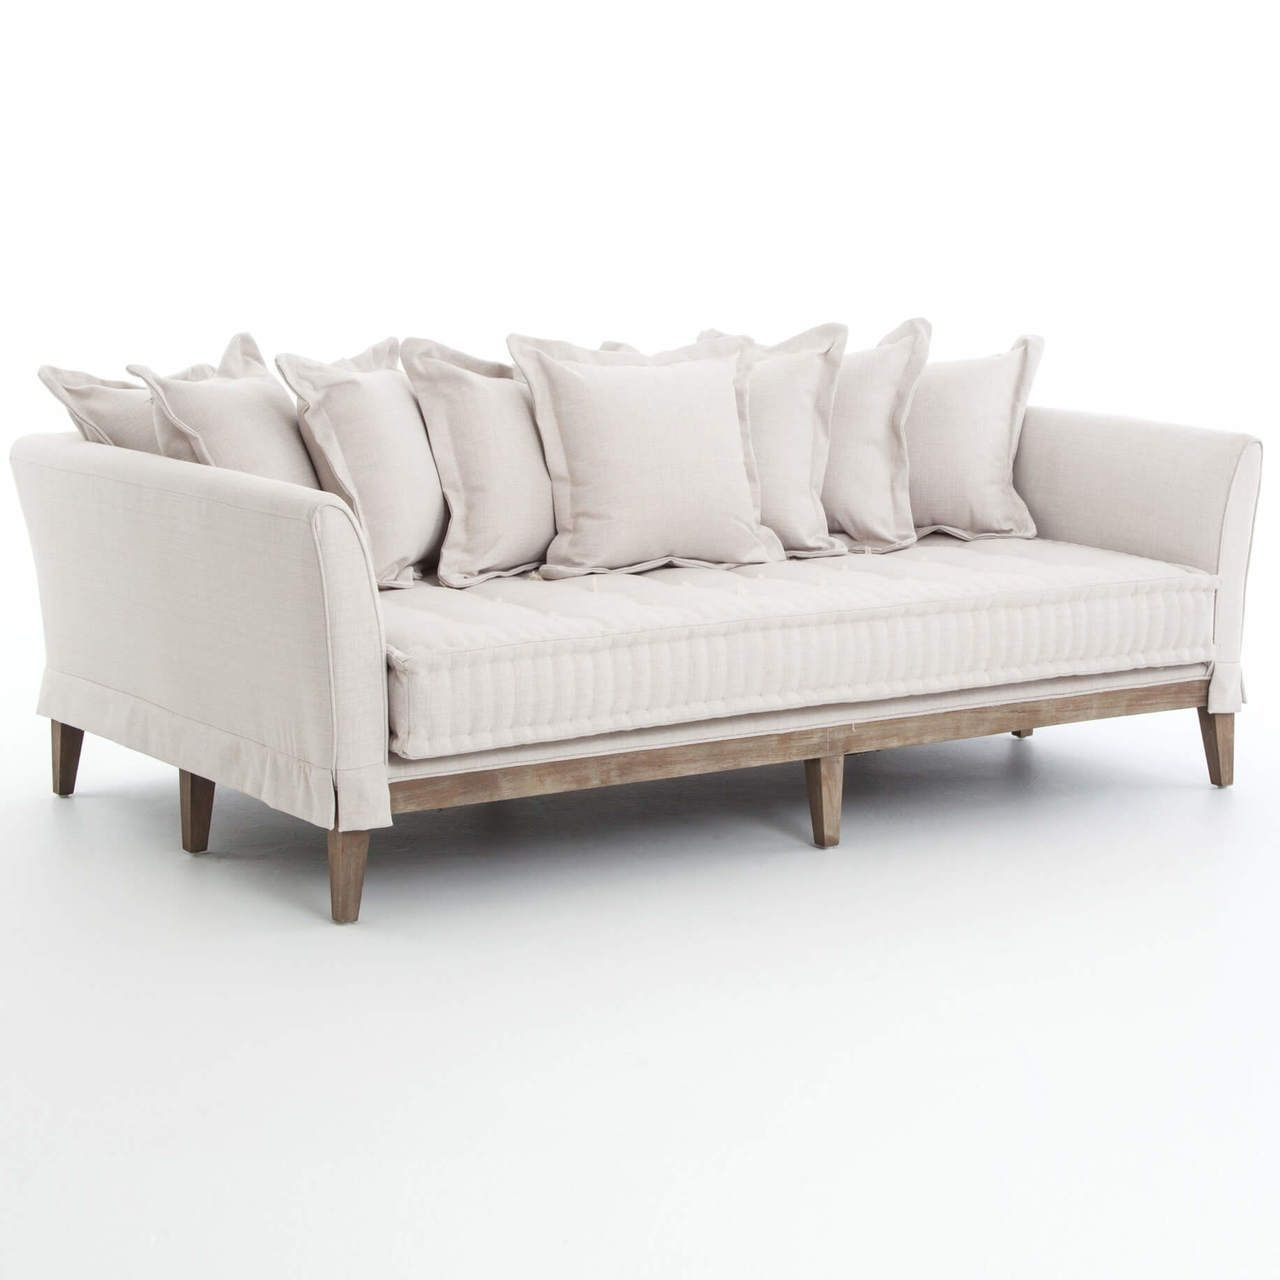 Theory Upholstered Daybed Couch Daybed Couch Upholstered Daybed